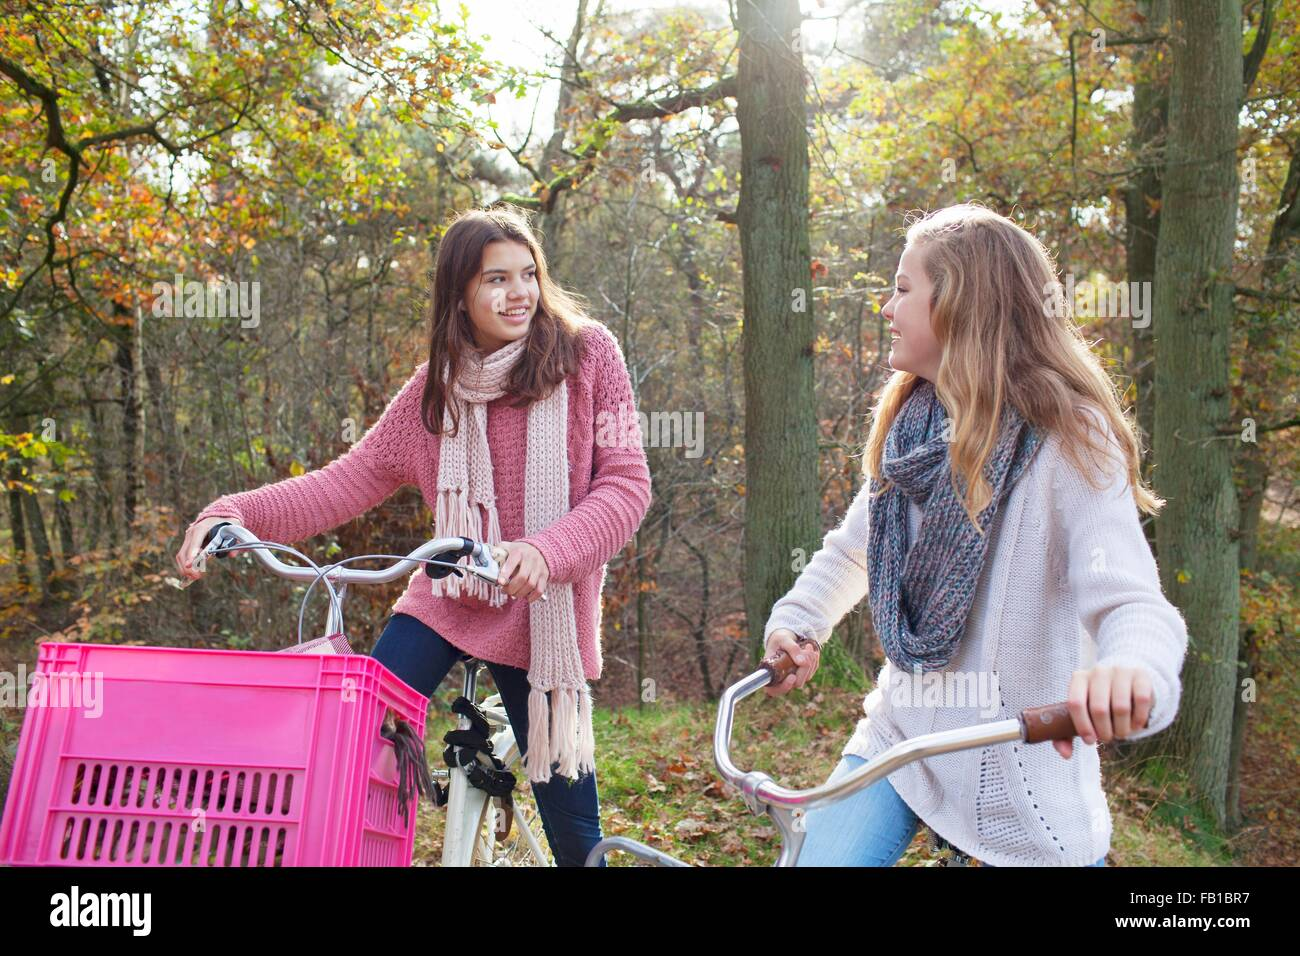 Teenage girls in forest sitting on bicycles with pink crate attached, face to face smiling - Stock Image